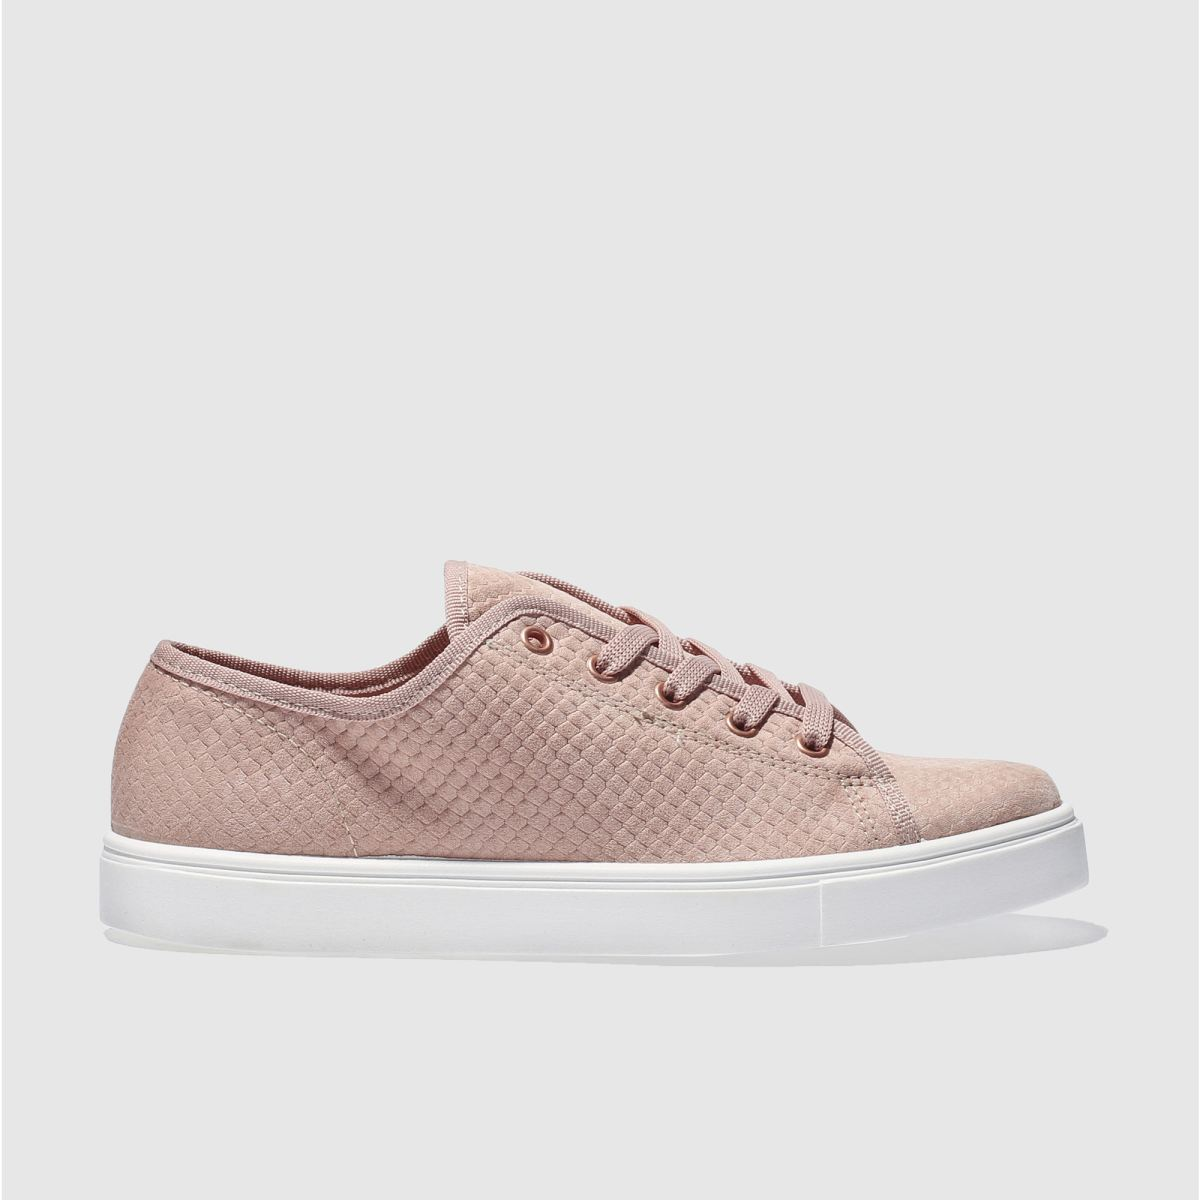 schuh pale pink next level trainers